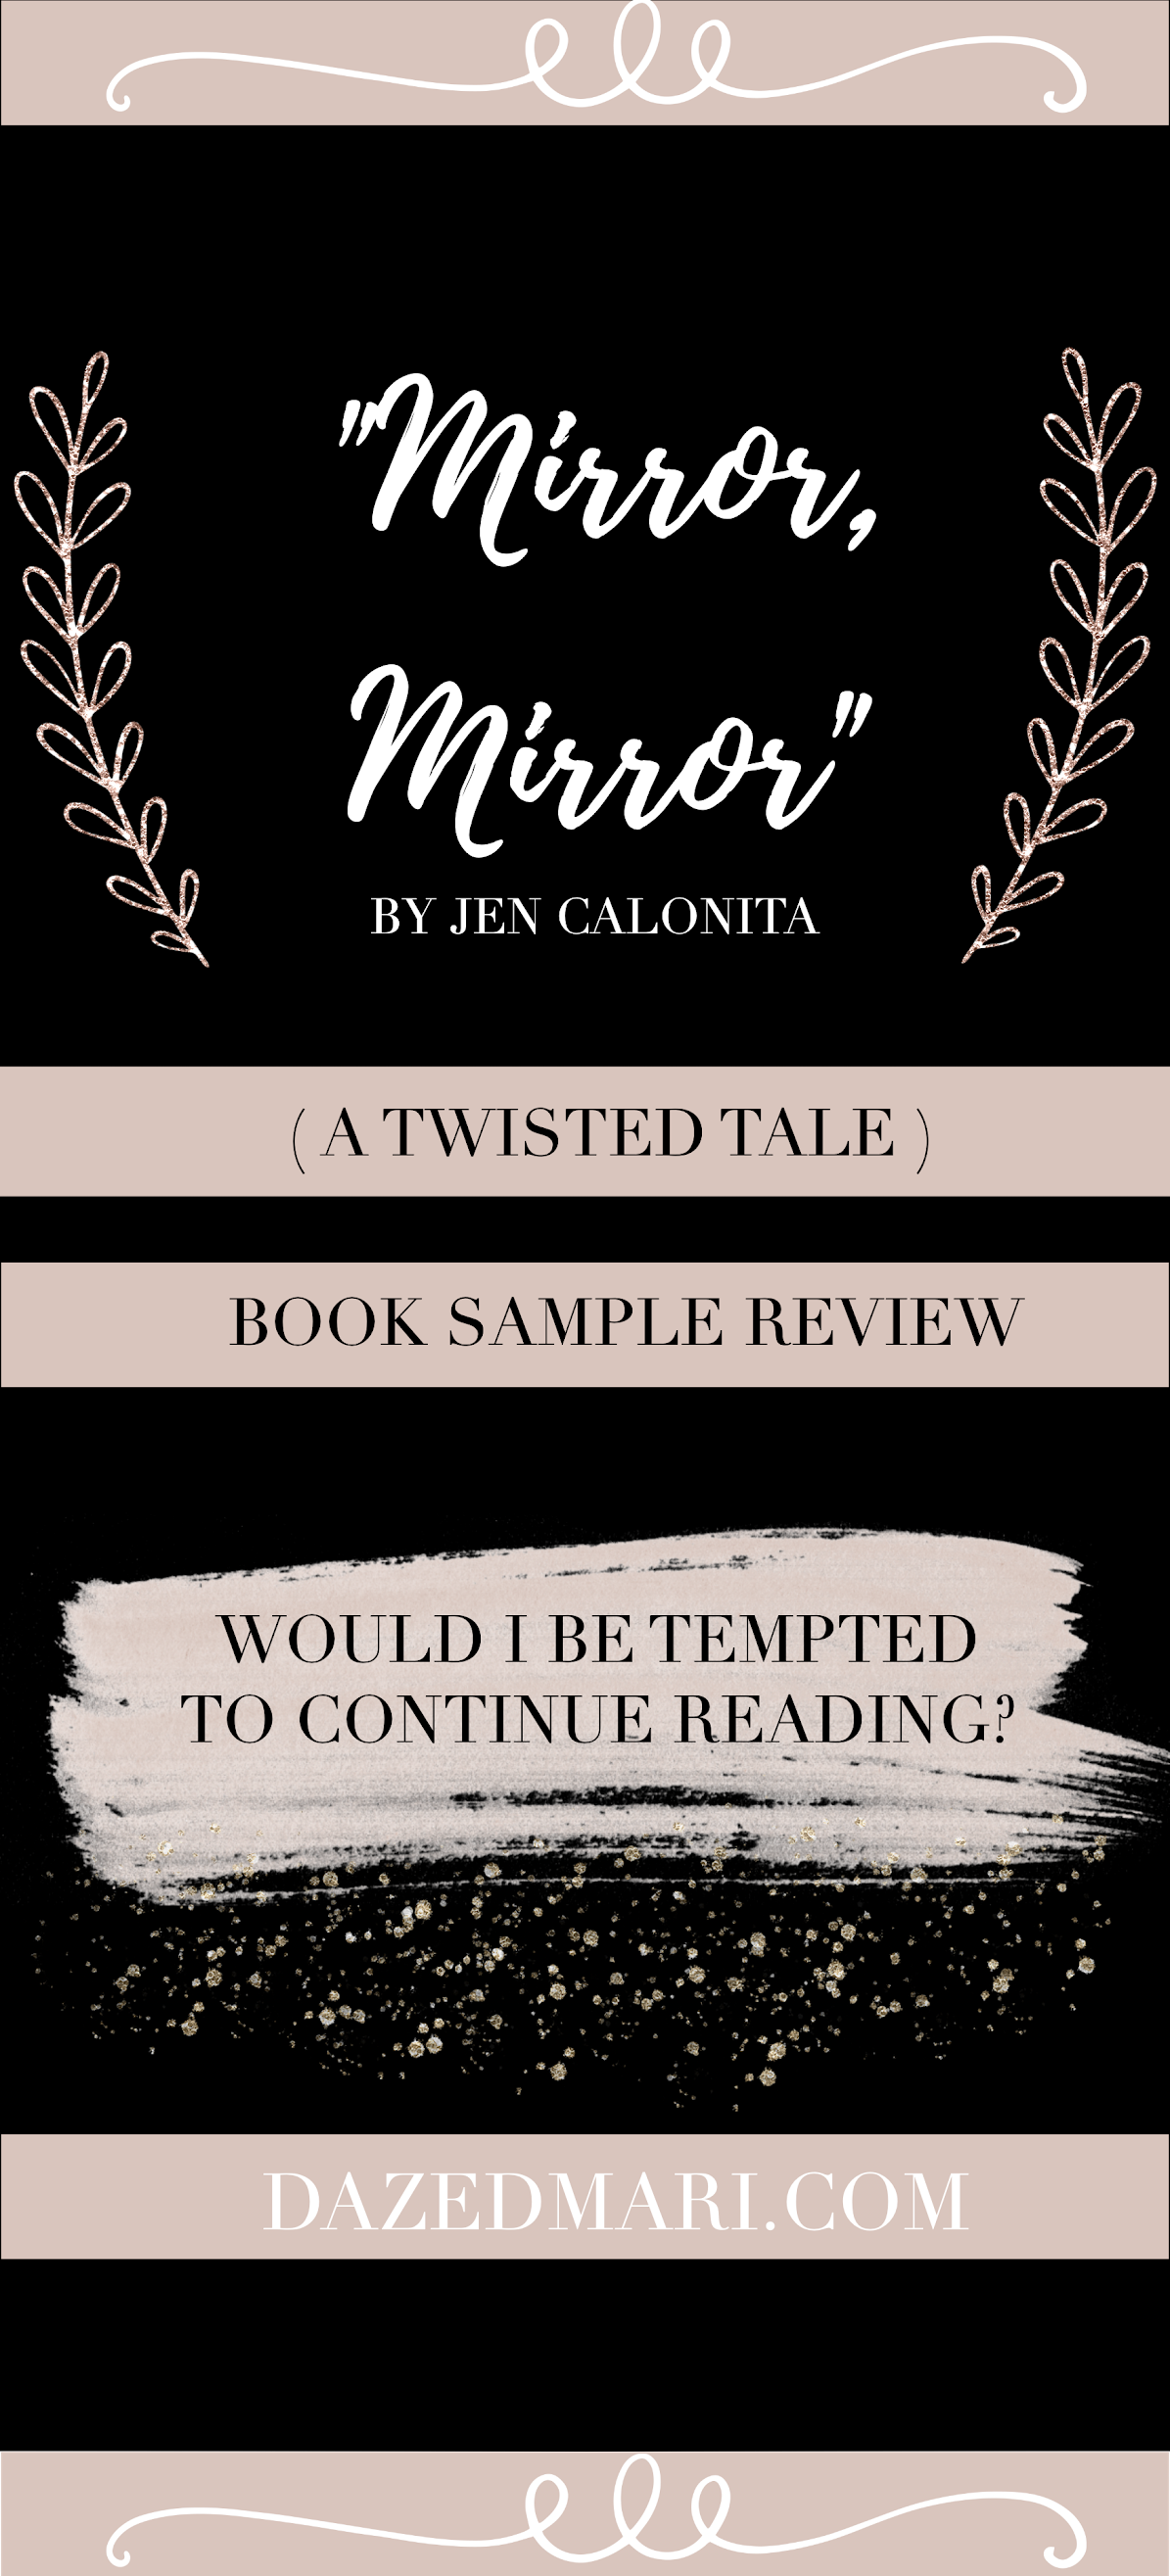 Book Sample Review - Mirror, Mirror (A Twisted Tale) by Jen Calonita